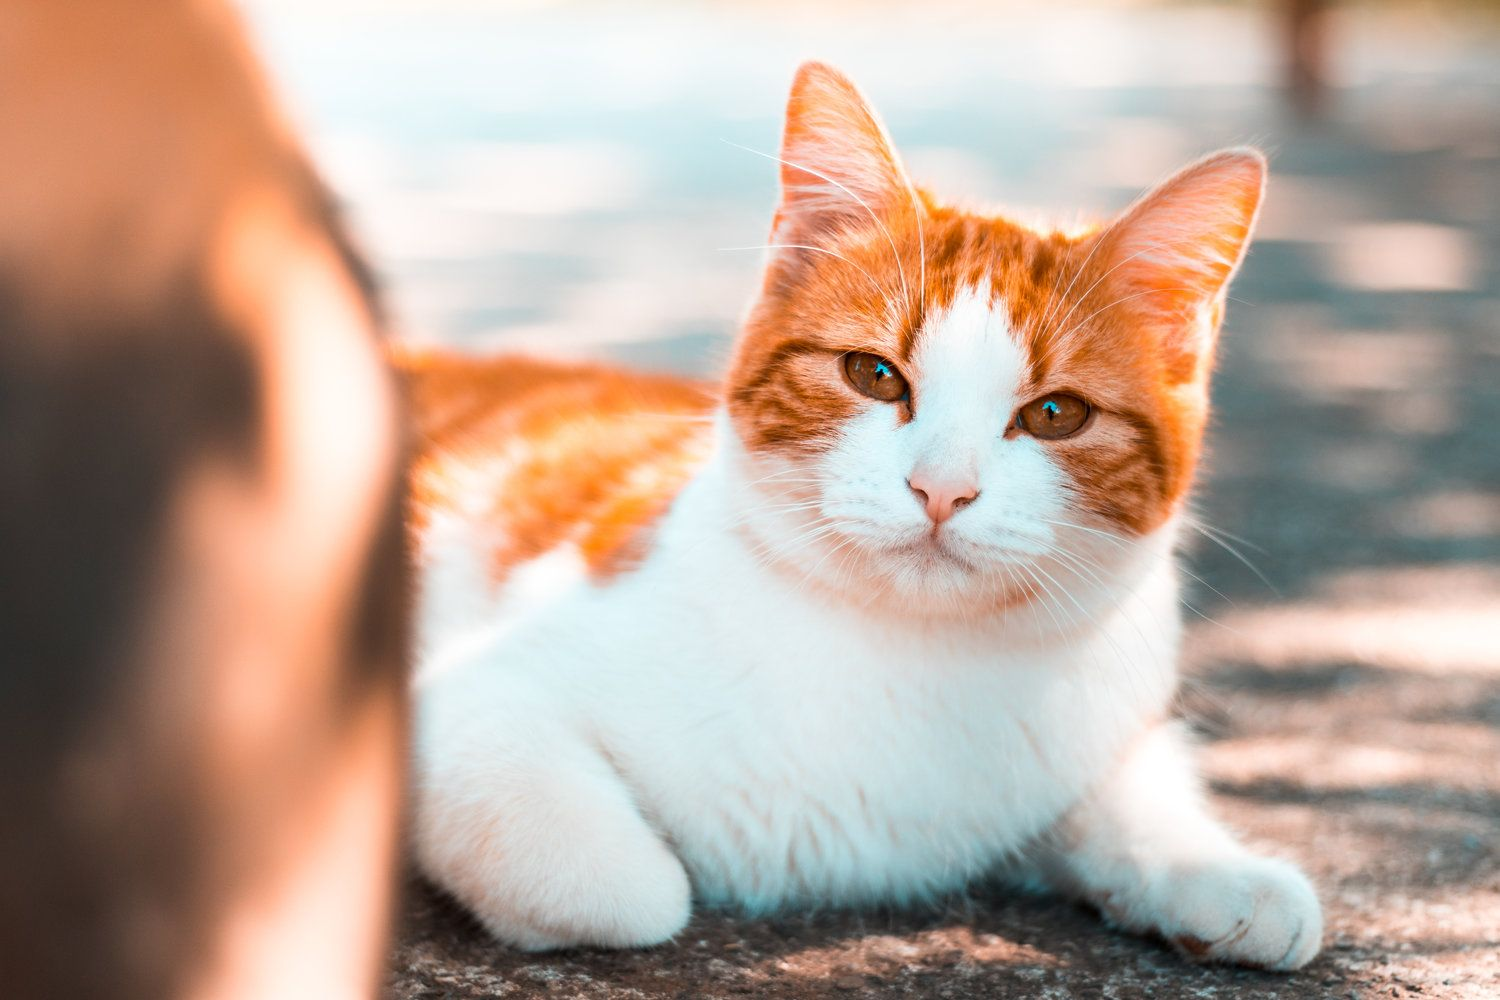 Hydromorphone Vs Dexmedetomidine For Emesis Induction In Cats Vet Candy Orange Tabby Cats Cat Pics I Love Cats